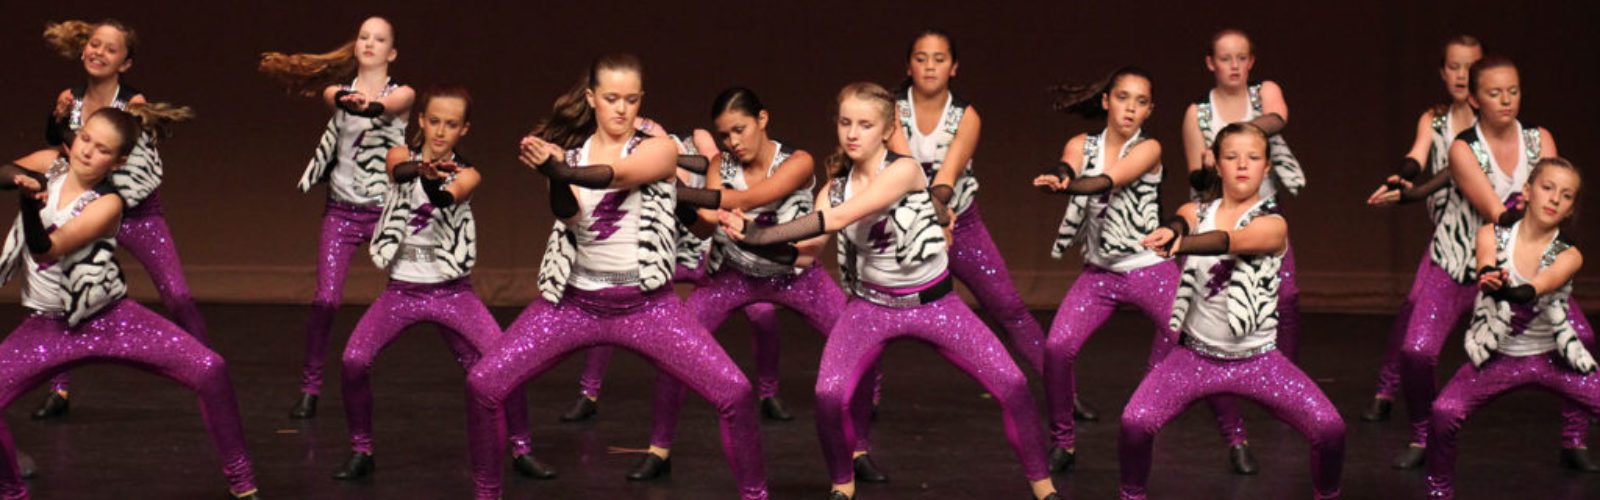 lfw-shool-of-dance